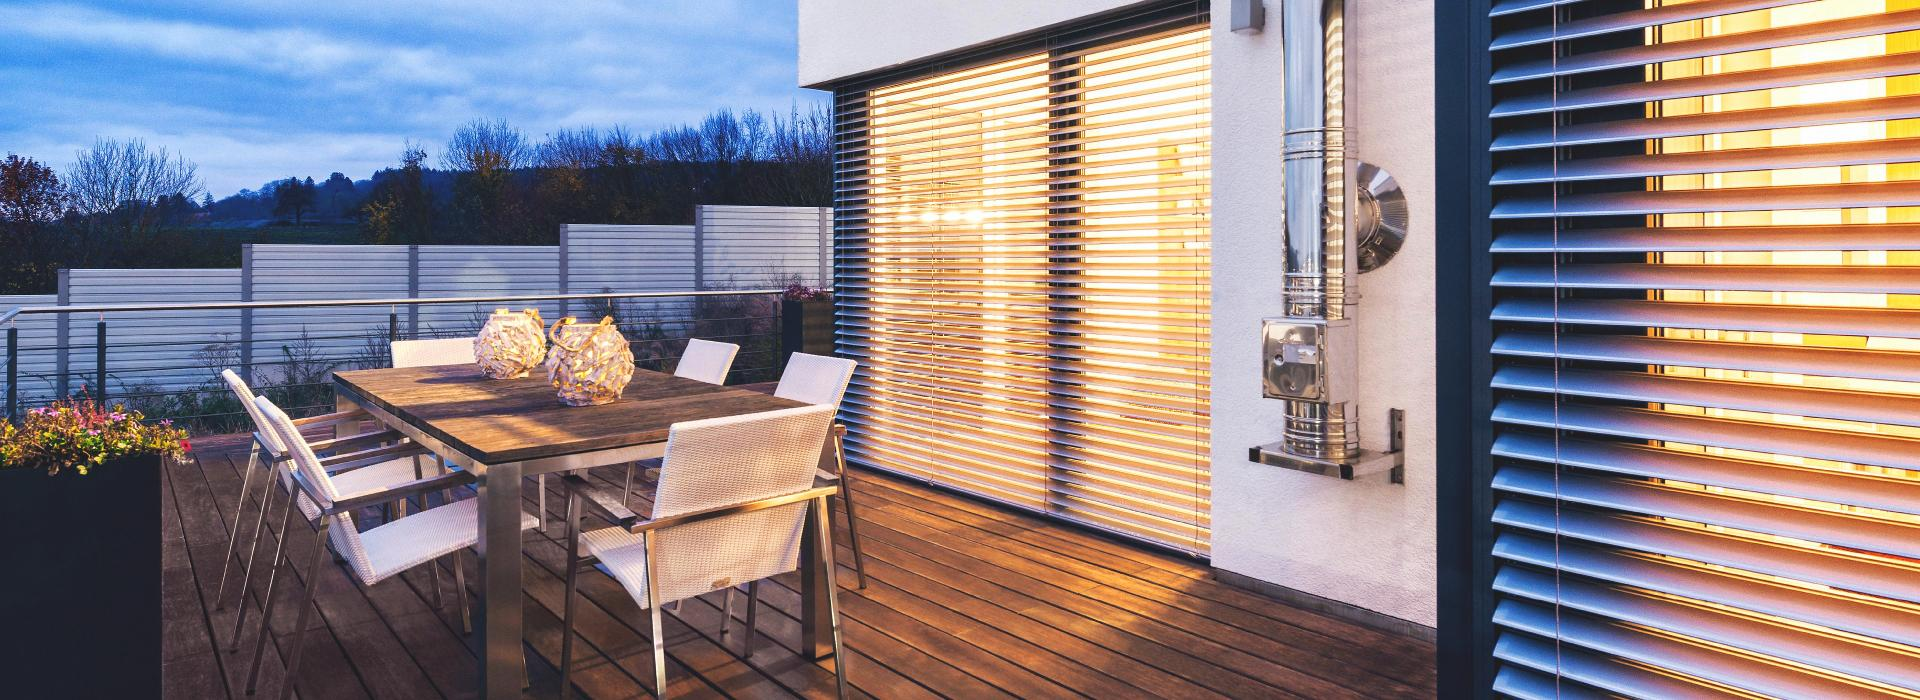 Patio with seating area in the twilight and with view to ROMA half opened external venetian blinds